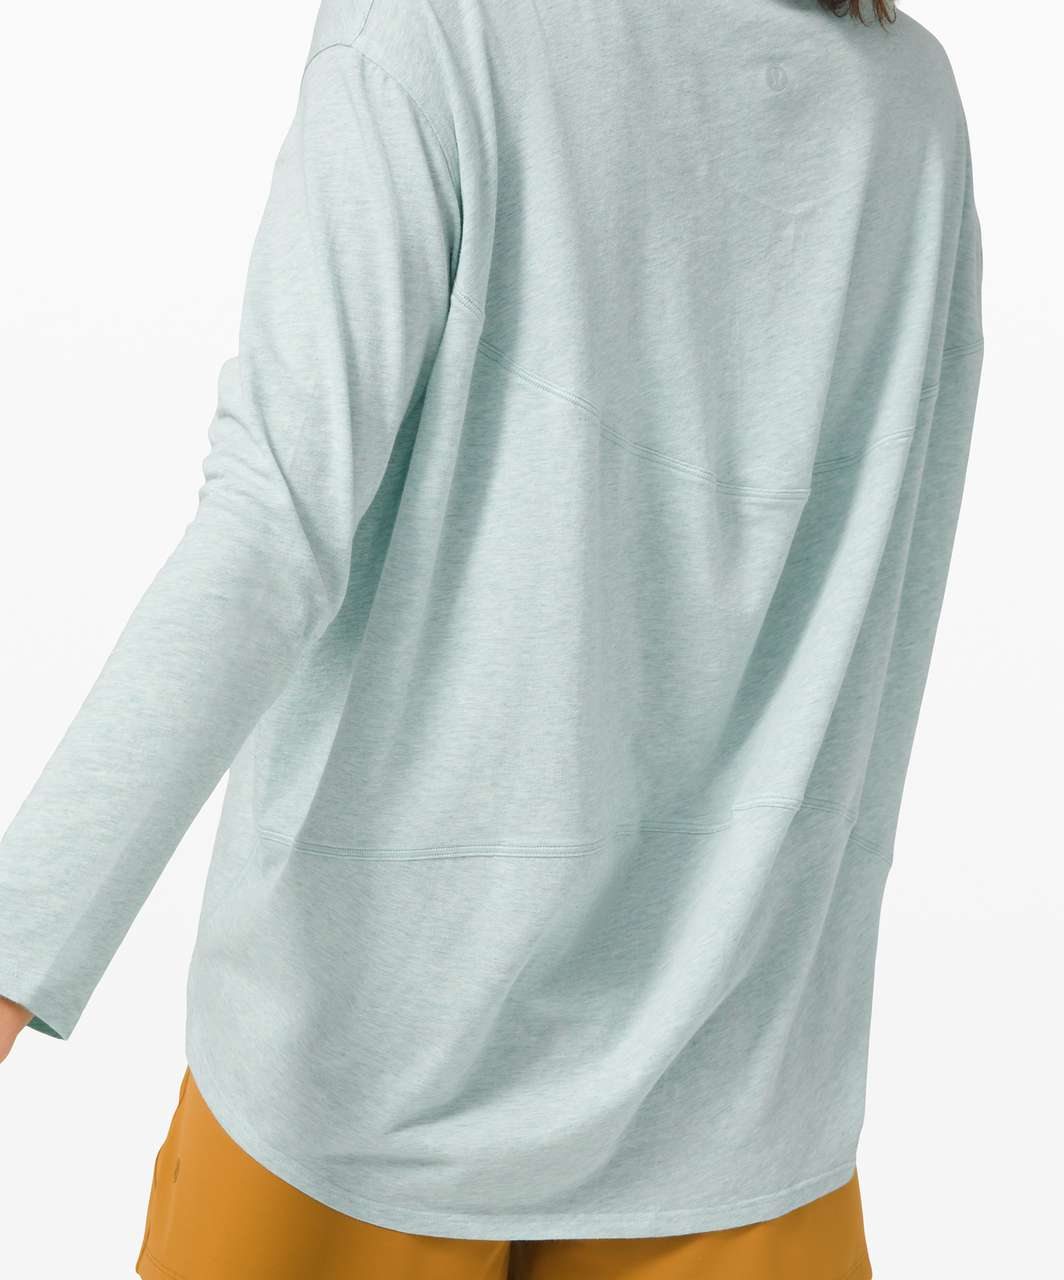 Lululemon Back In Action Long Sleeve - Heathered Hazy Jade